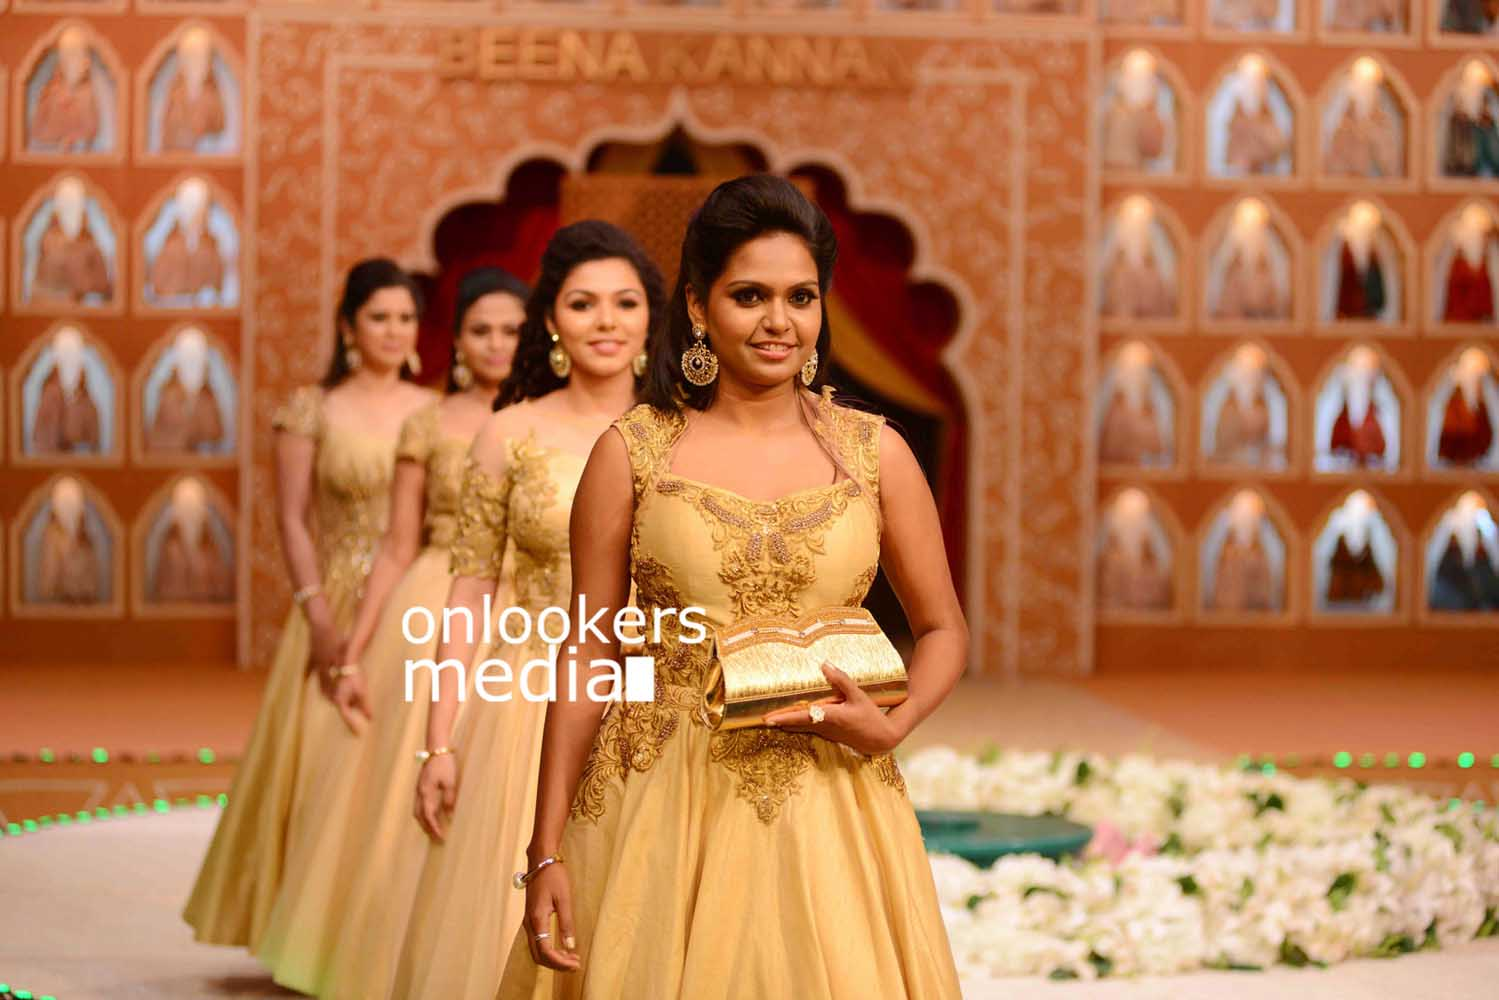 http://onlookersmedia.in/wp-content/uploads/2016/10/Beena-Kannan-Bridal-Show-2016-Stills-Photos-8.jpg